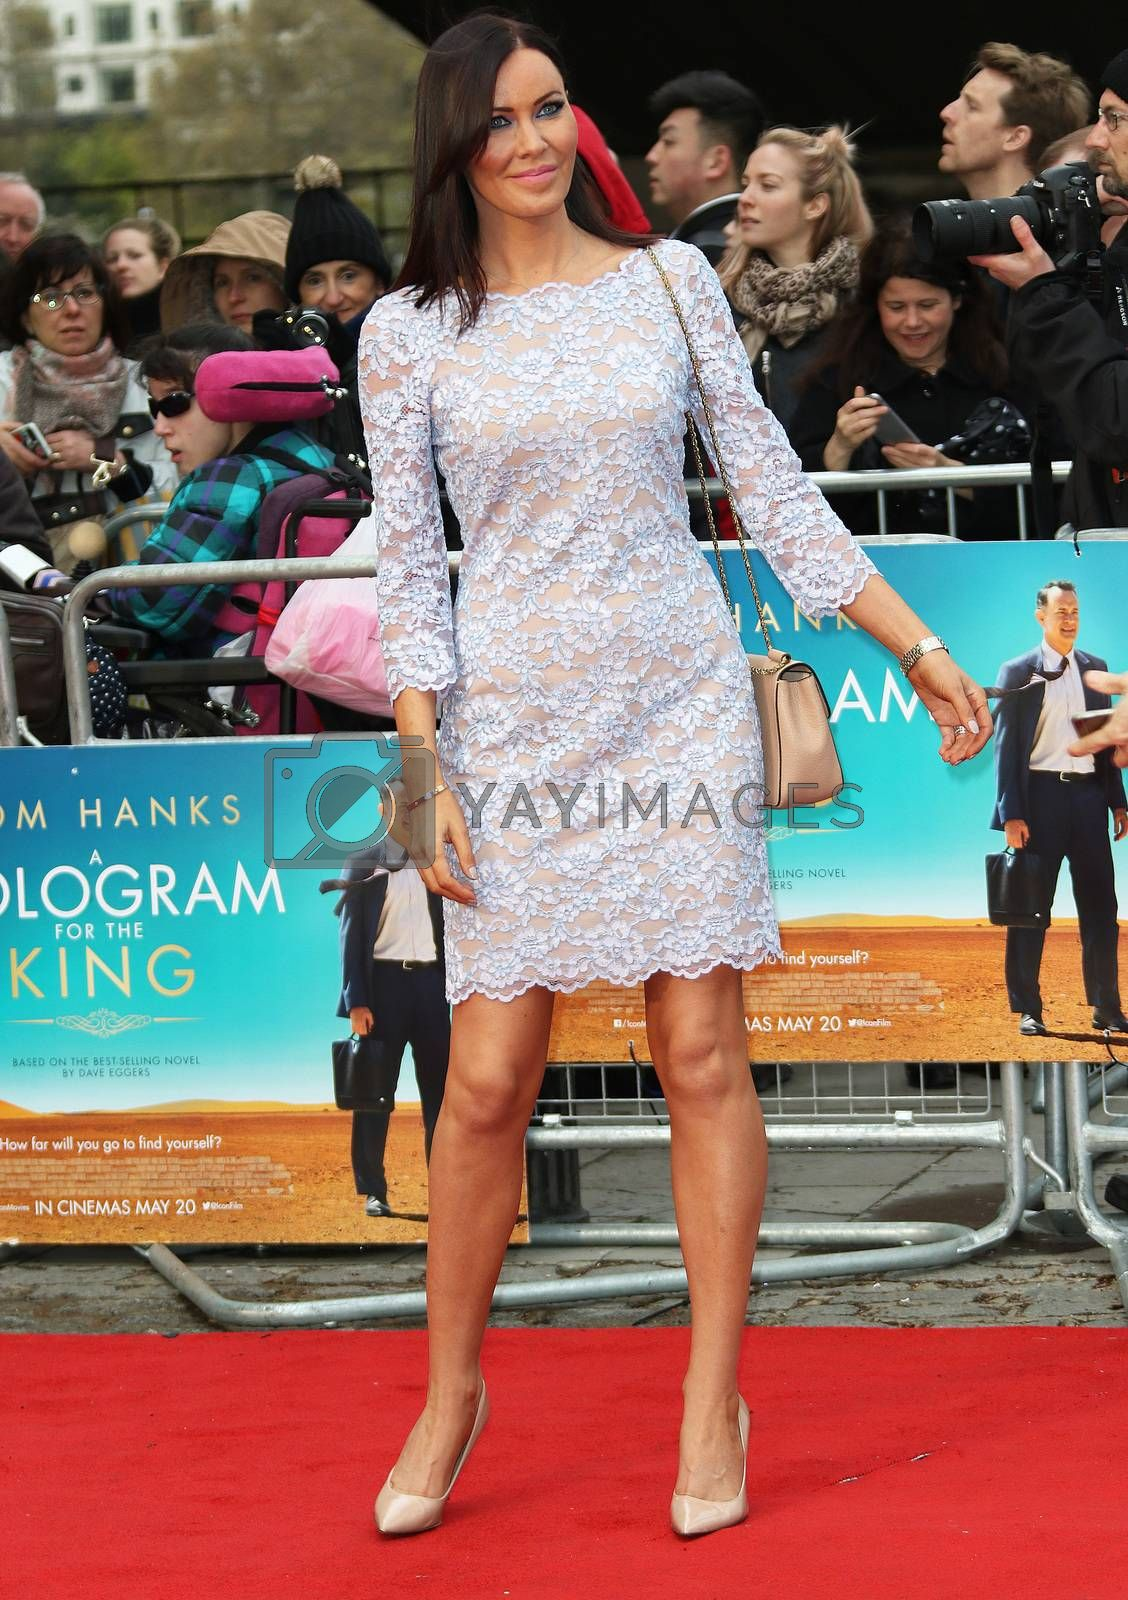 UK, London: Linzi Stoppard attends the UK Film Premiere of 'A Hologram for the King' at the BFI Southbank, in London on April 25, 2016.The film stars Tom Hanks, who plays a businessman on a trip to Saudi Arabia. Also in attendance at the premiere were Christy Meyer, Linzi Stoppard and Megan Maczko.